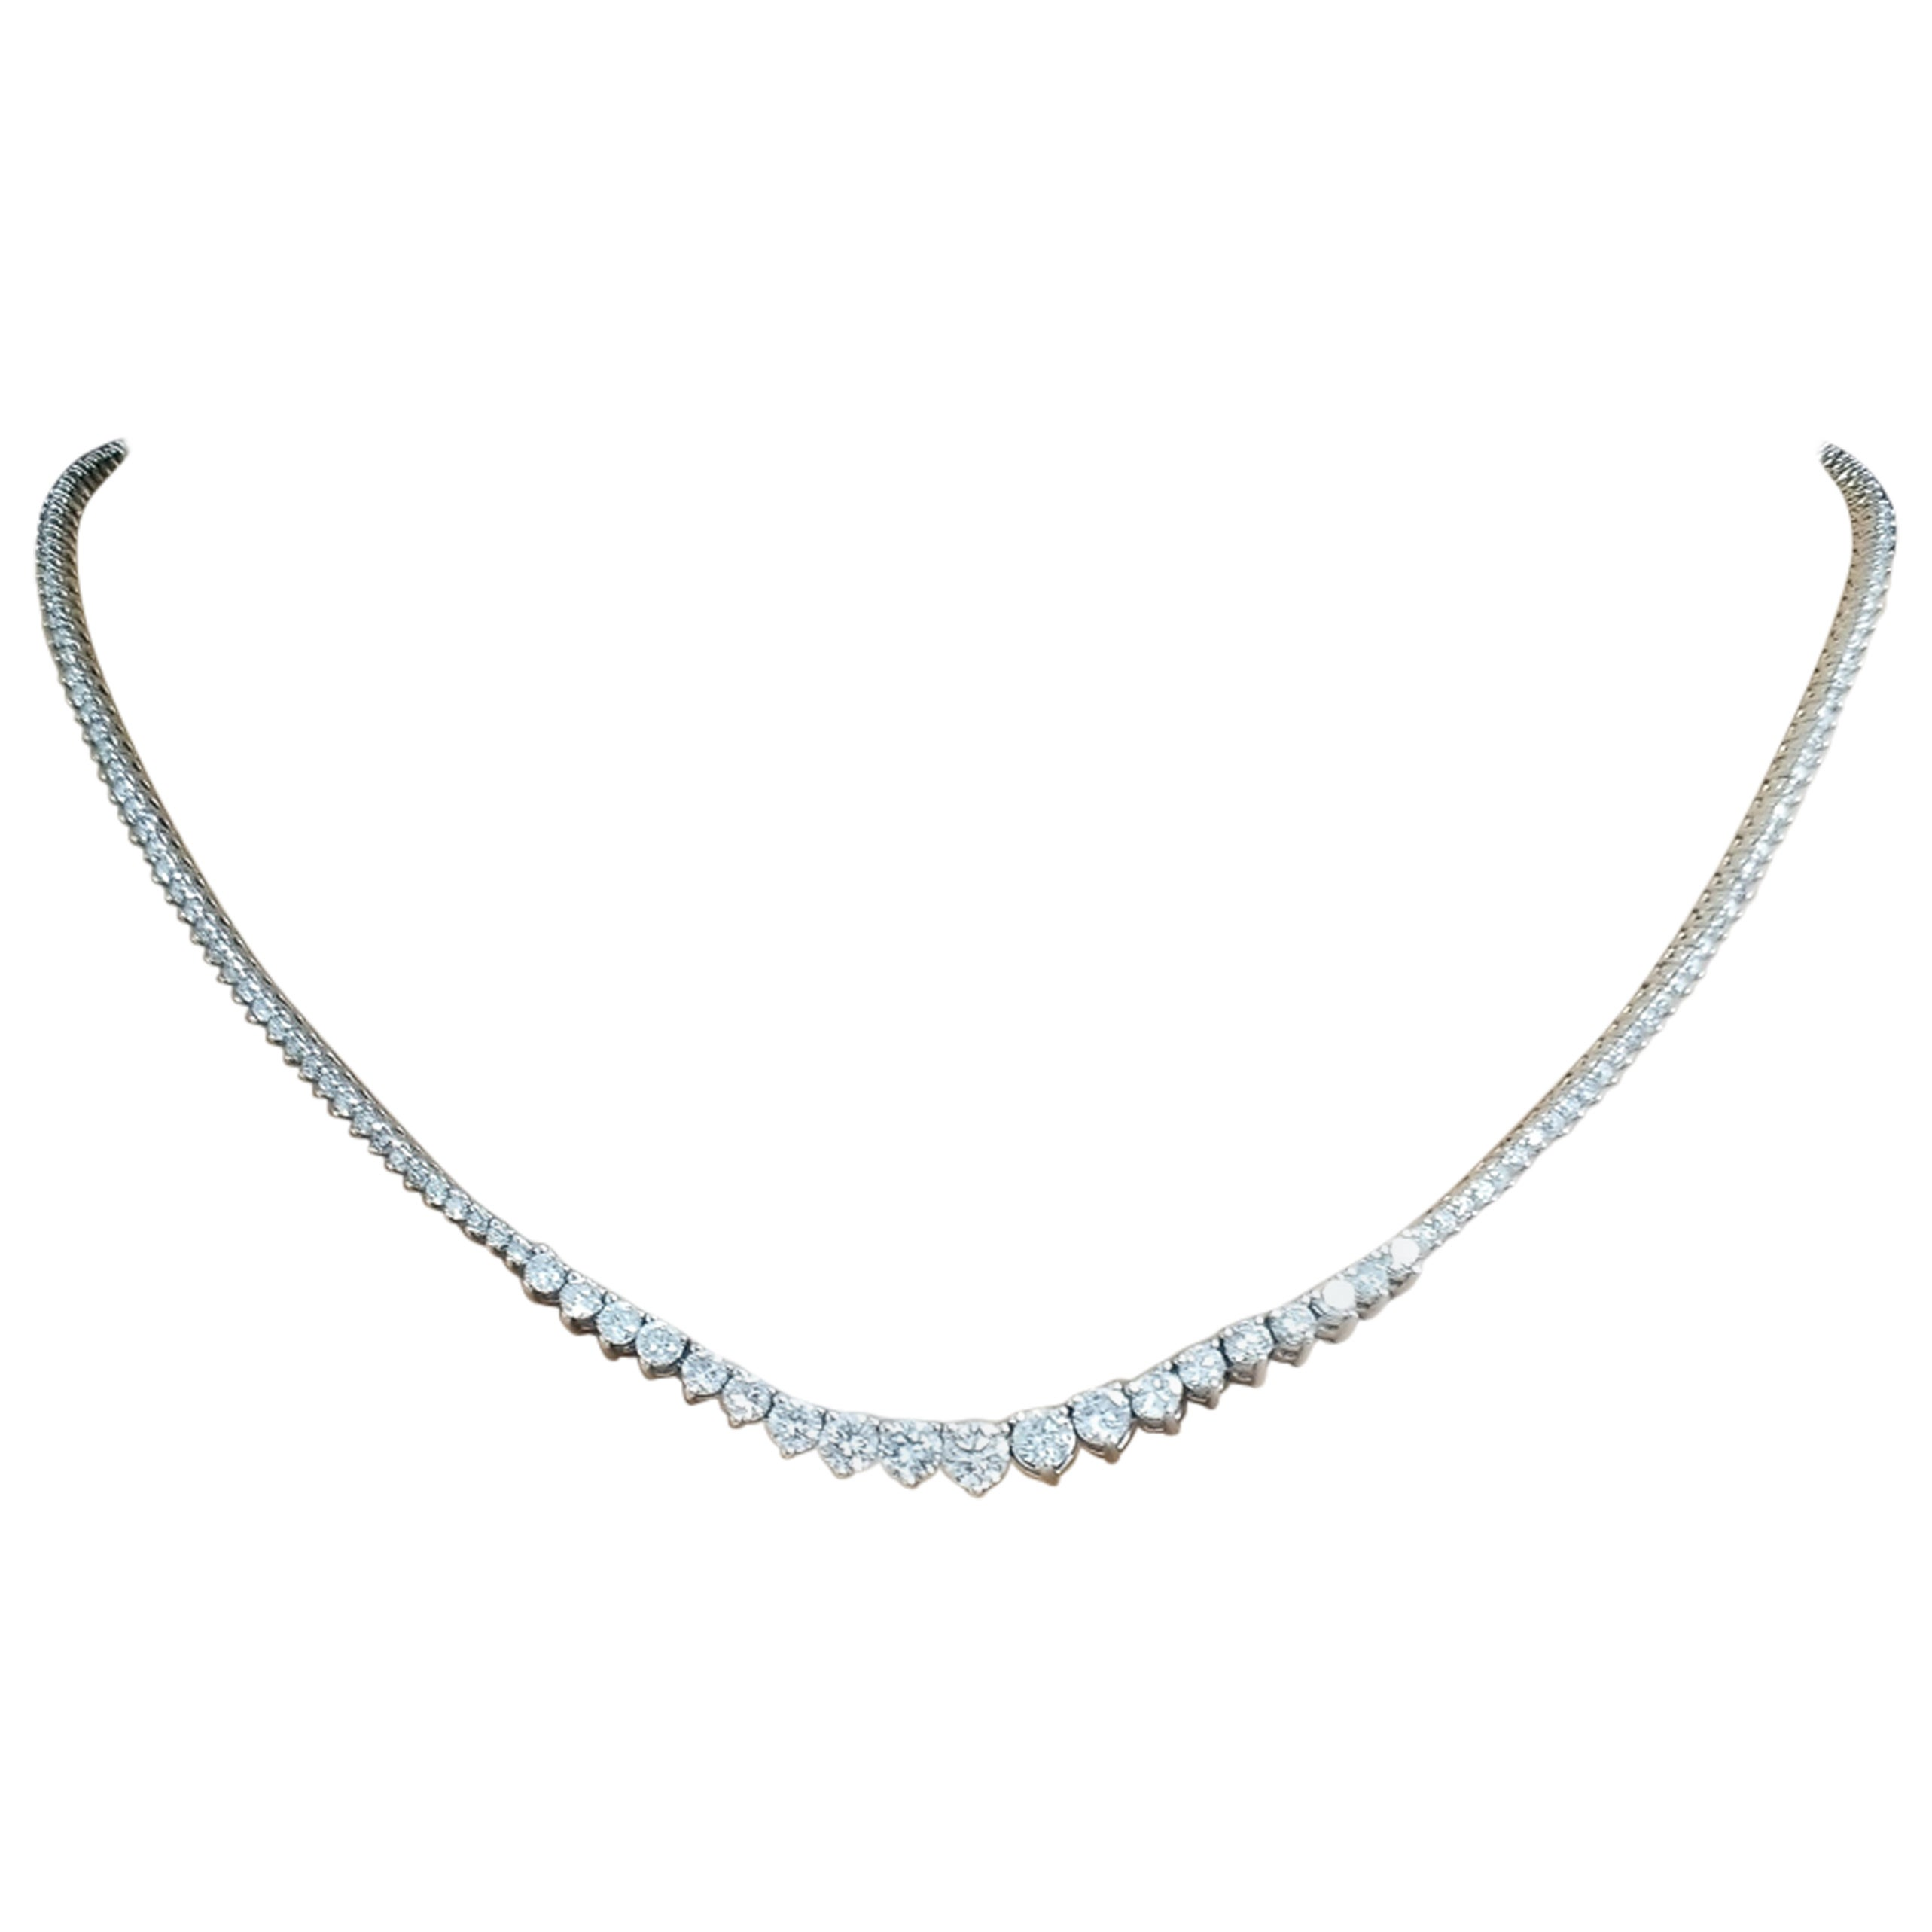 5.10 Carat Total Diamond Graduated Riviera Necklace in 14 Karat White Gold